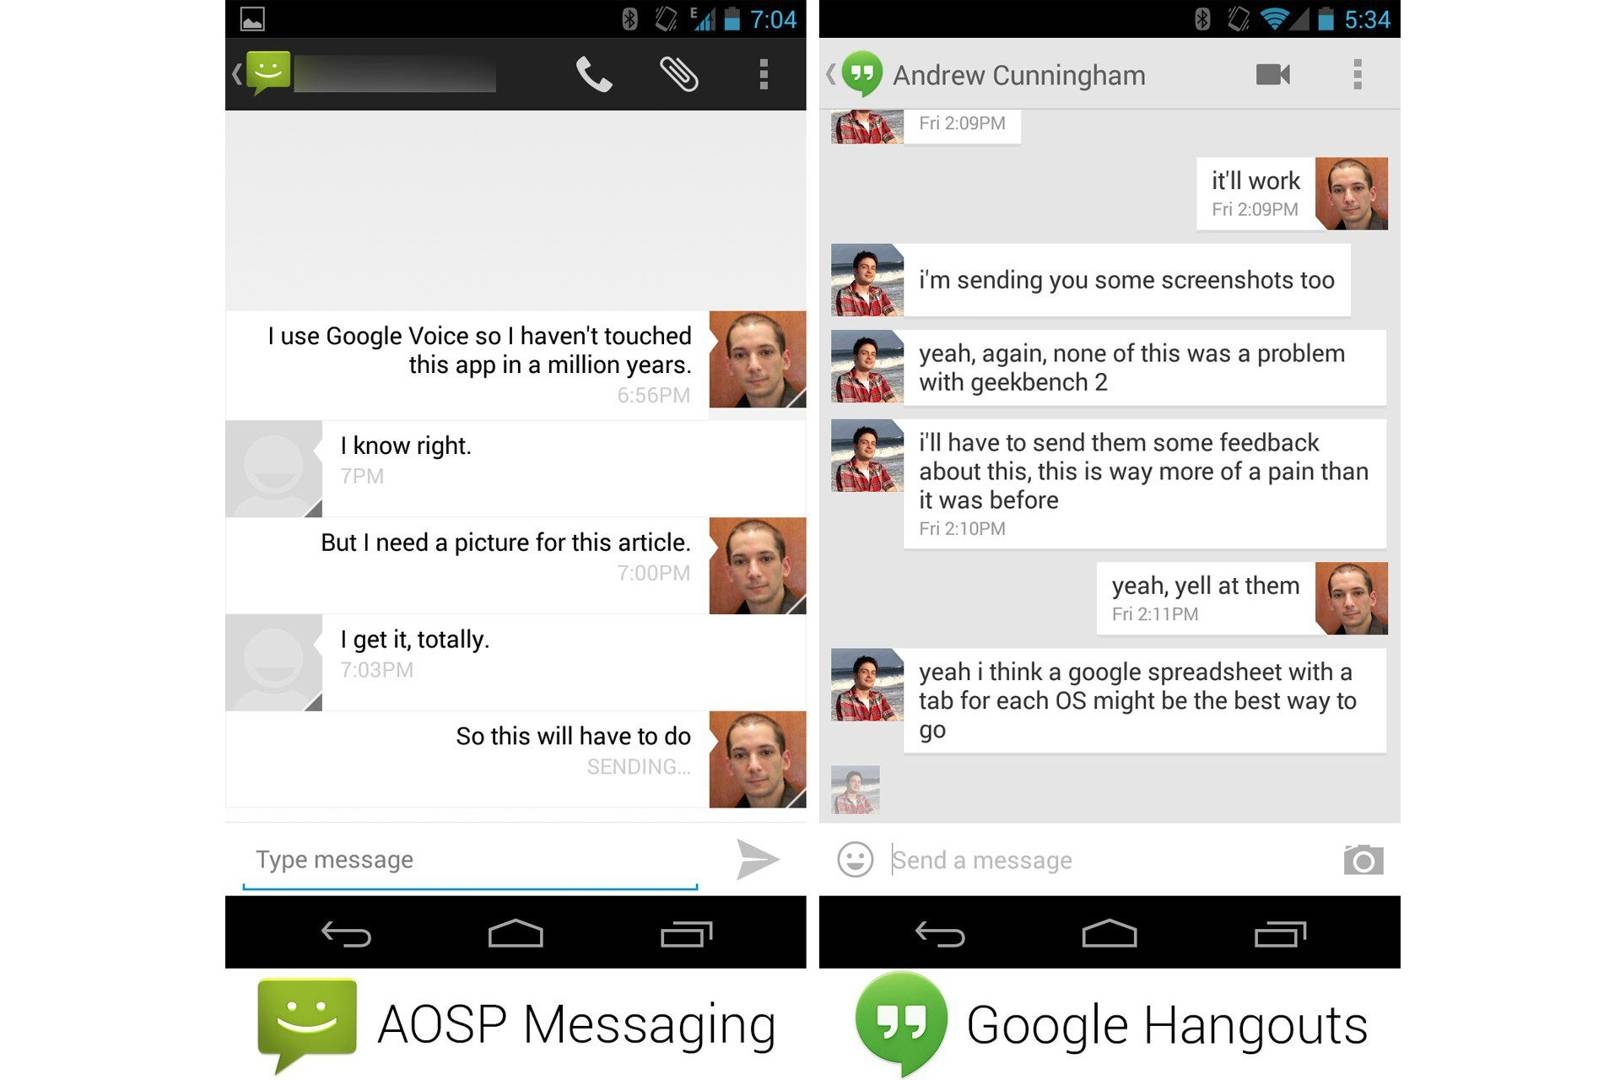 Google's iron grip on Android: controlling open source by